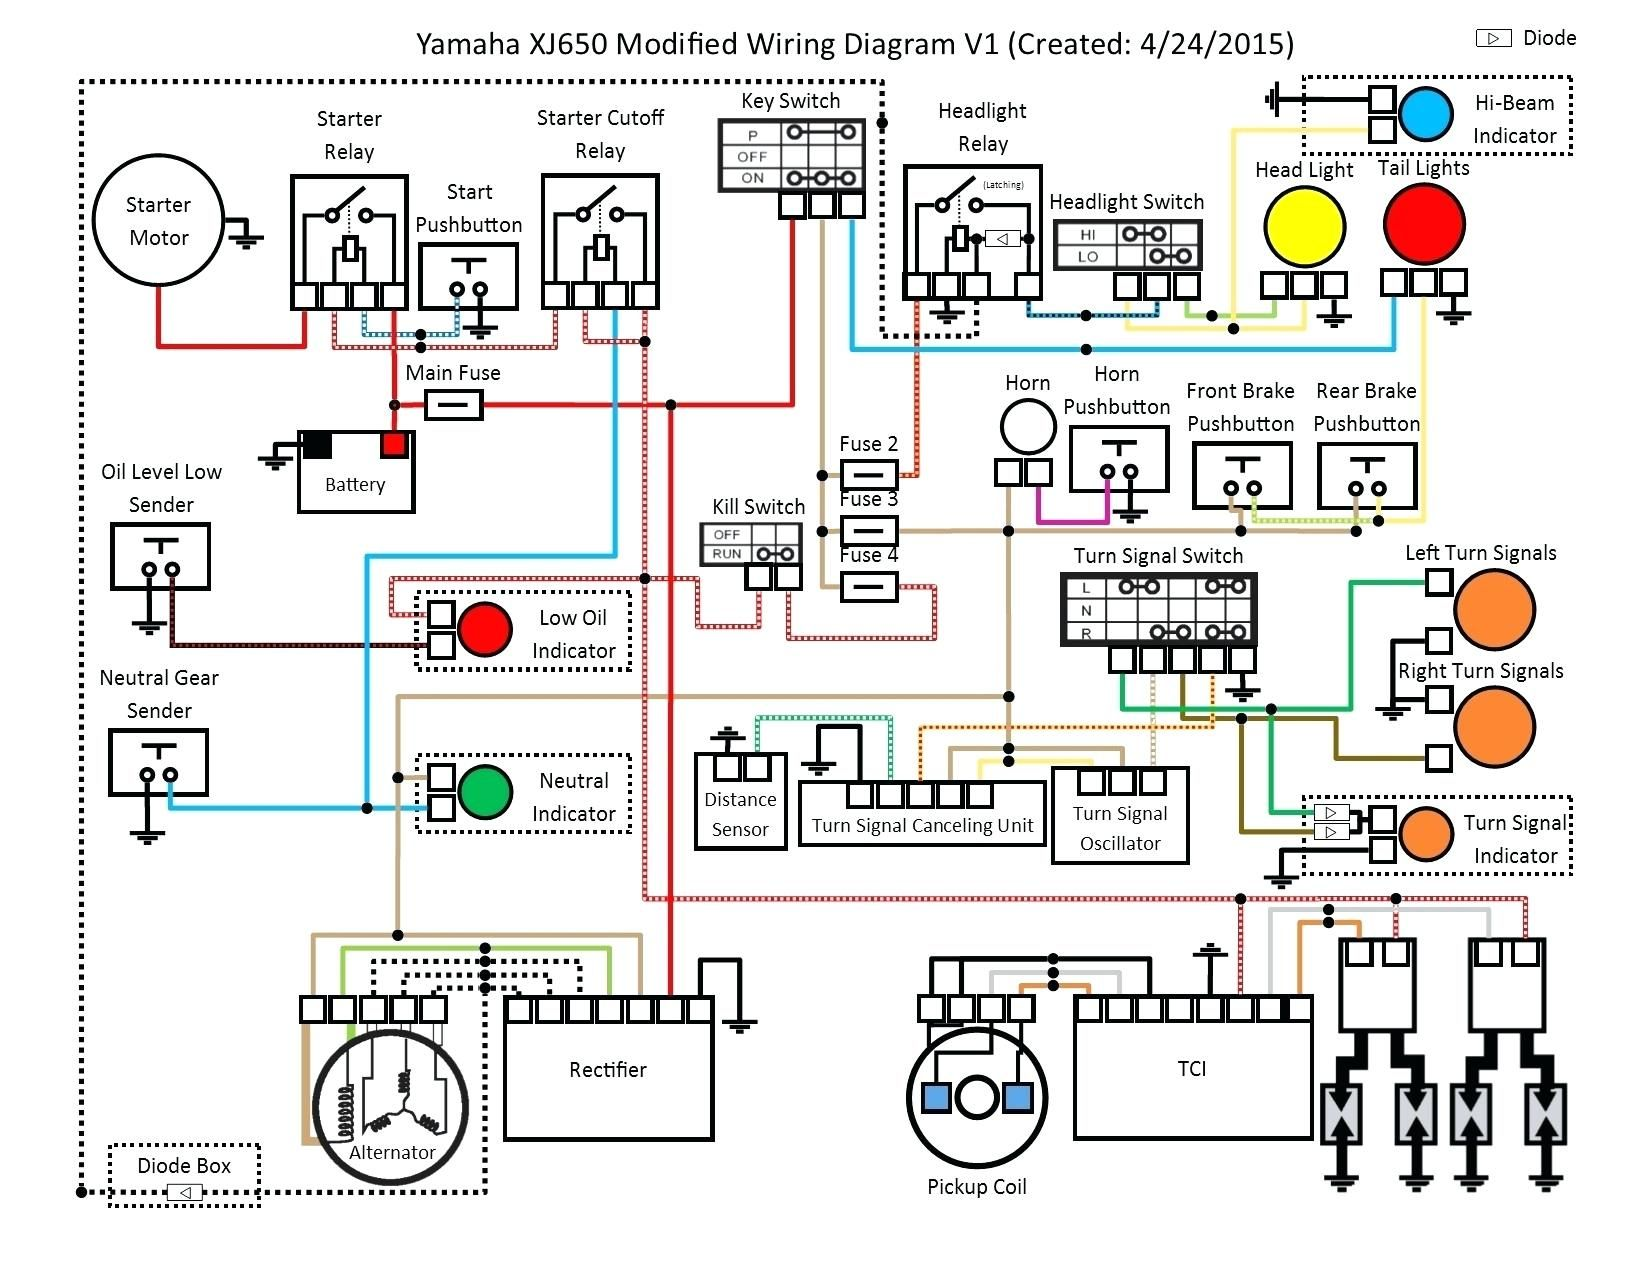 xrm headlight wiring diagram wiring diagram blog xrm headlight wiring diagram source honda xrm motorcycle  [ 1650 x 1275 Pixel ]